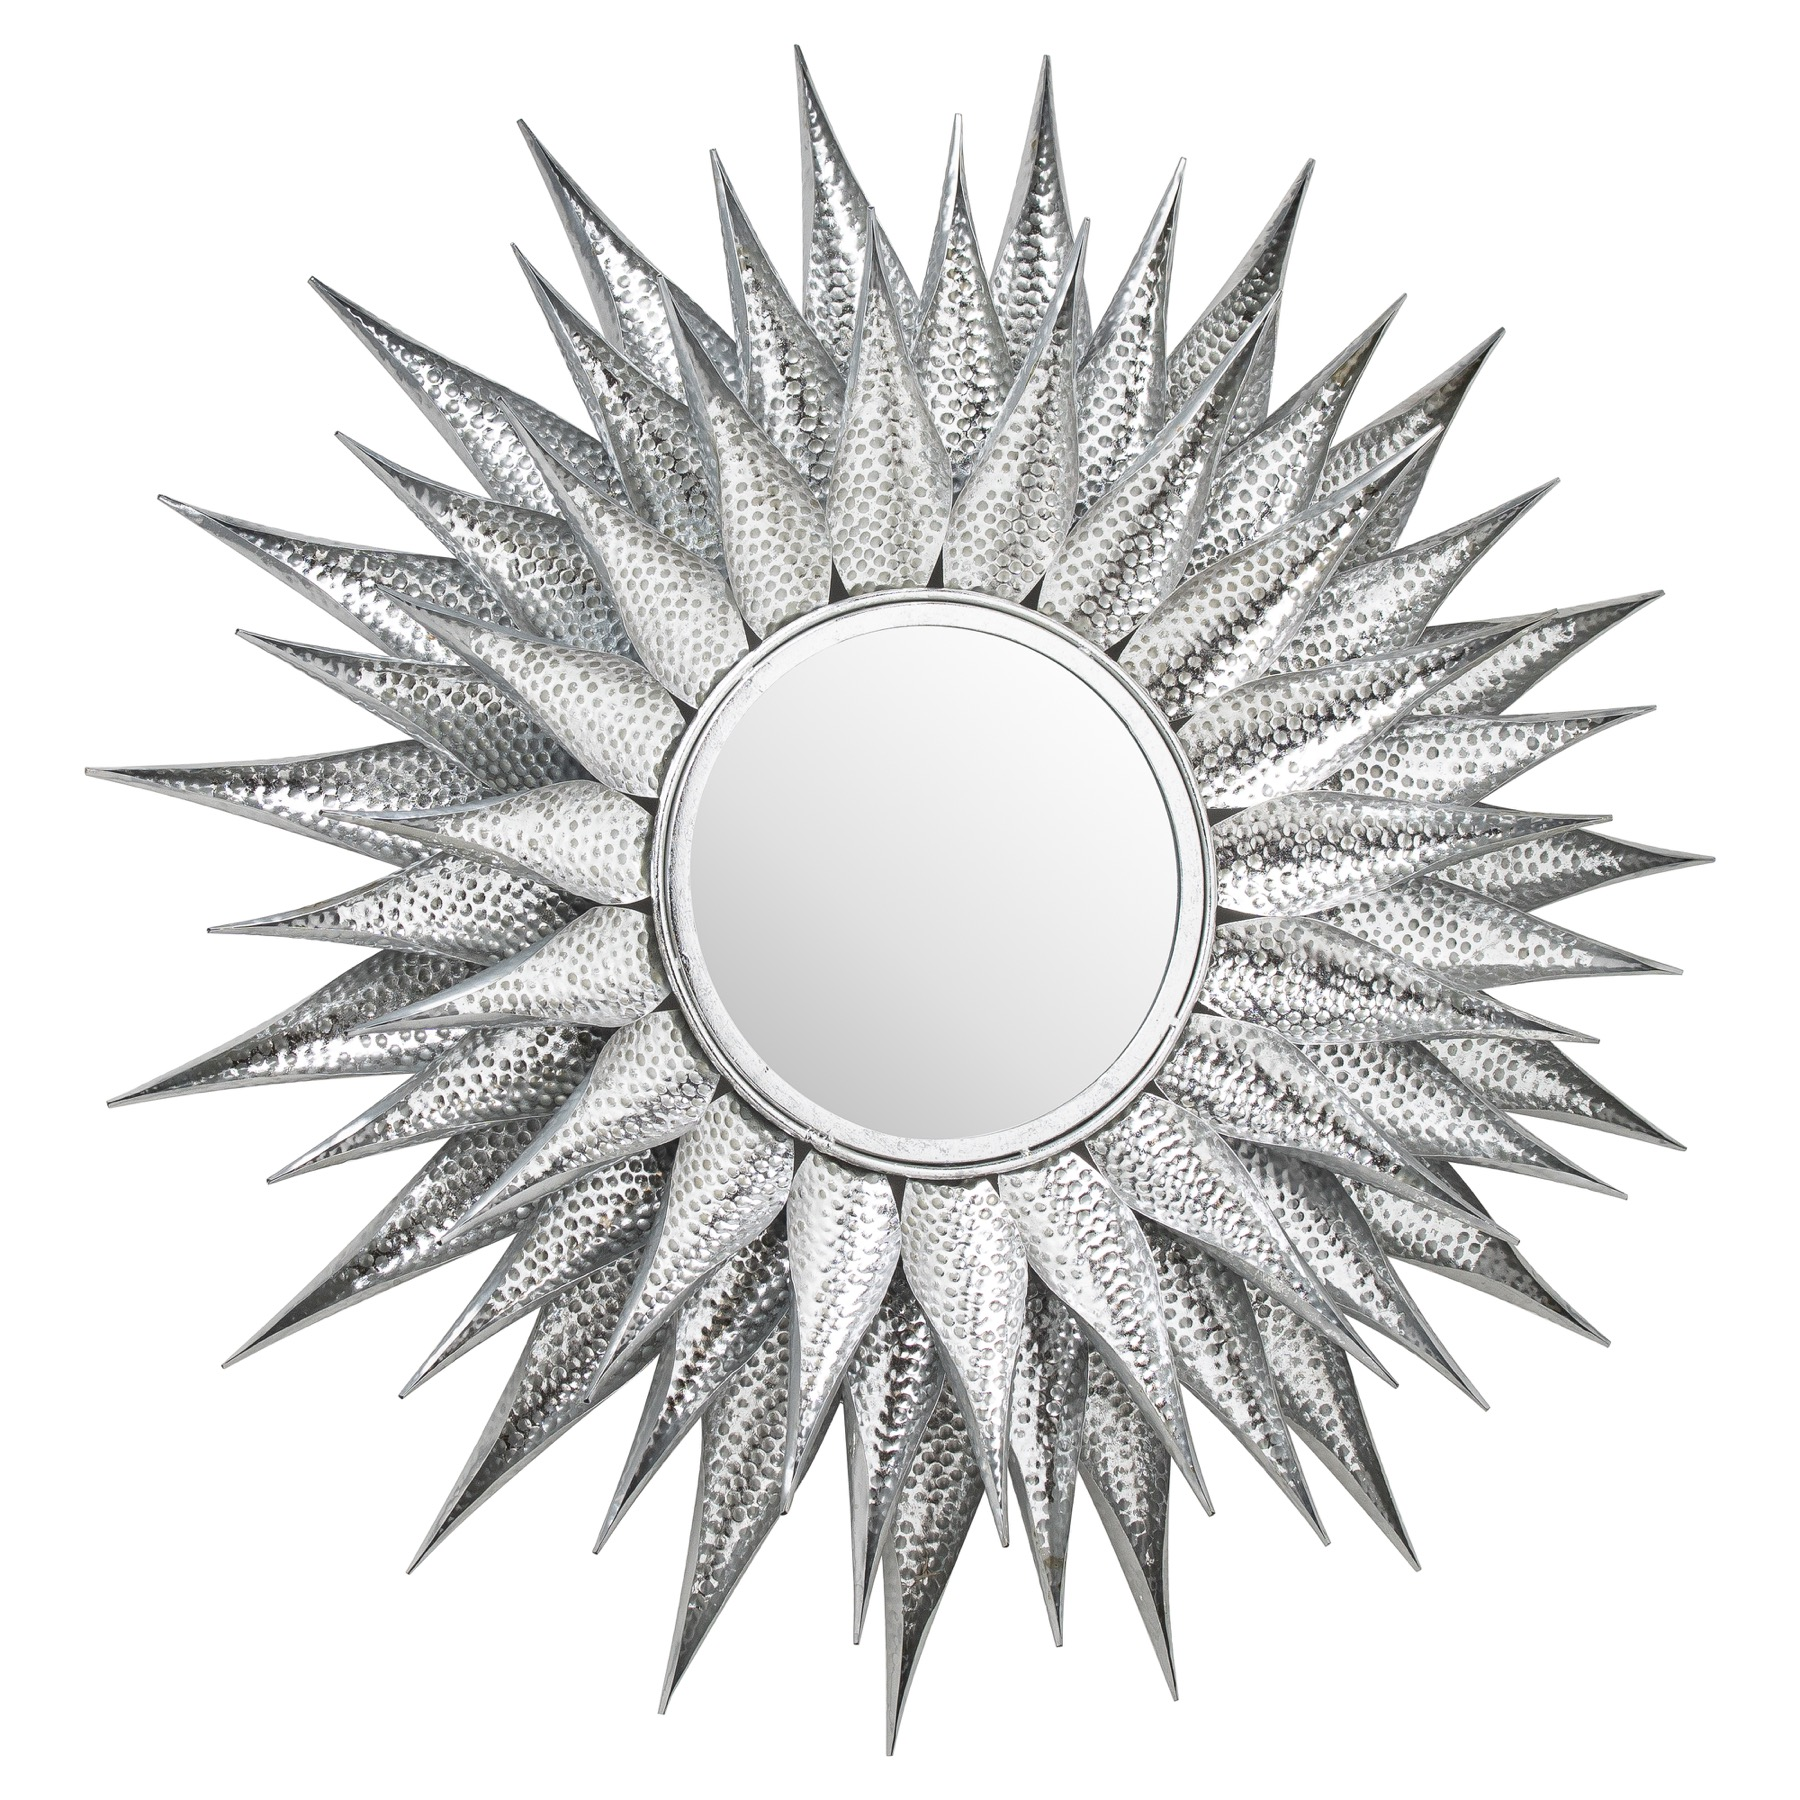 Ohlson Silver Large Sunburst Mirror From Baytree Interiors